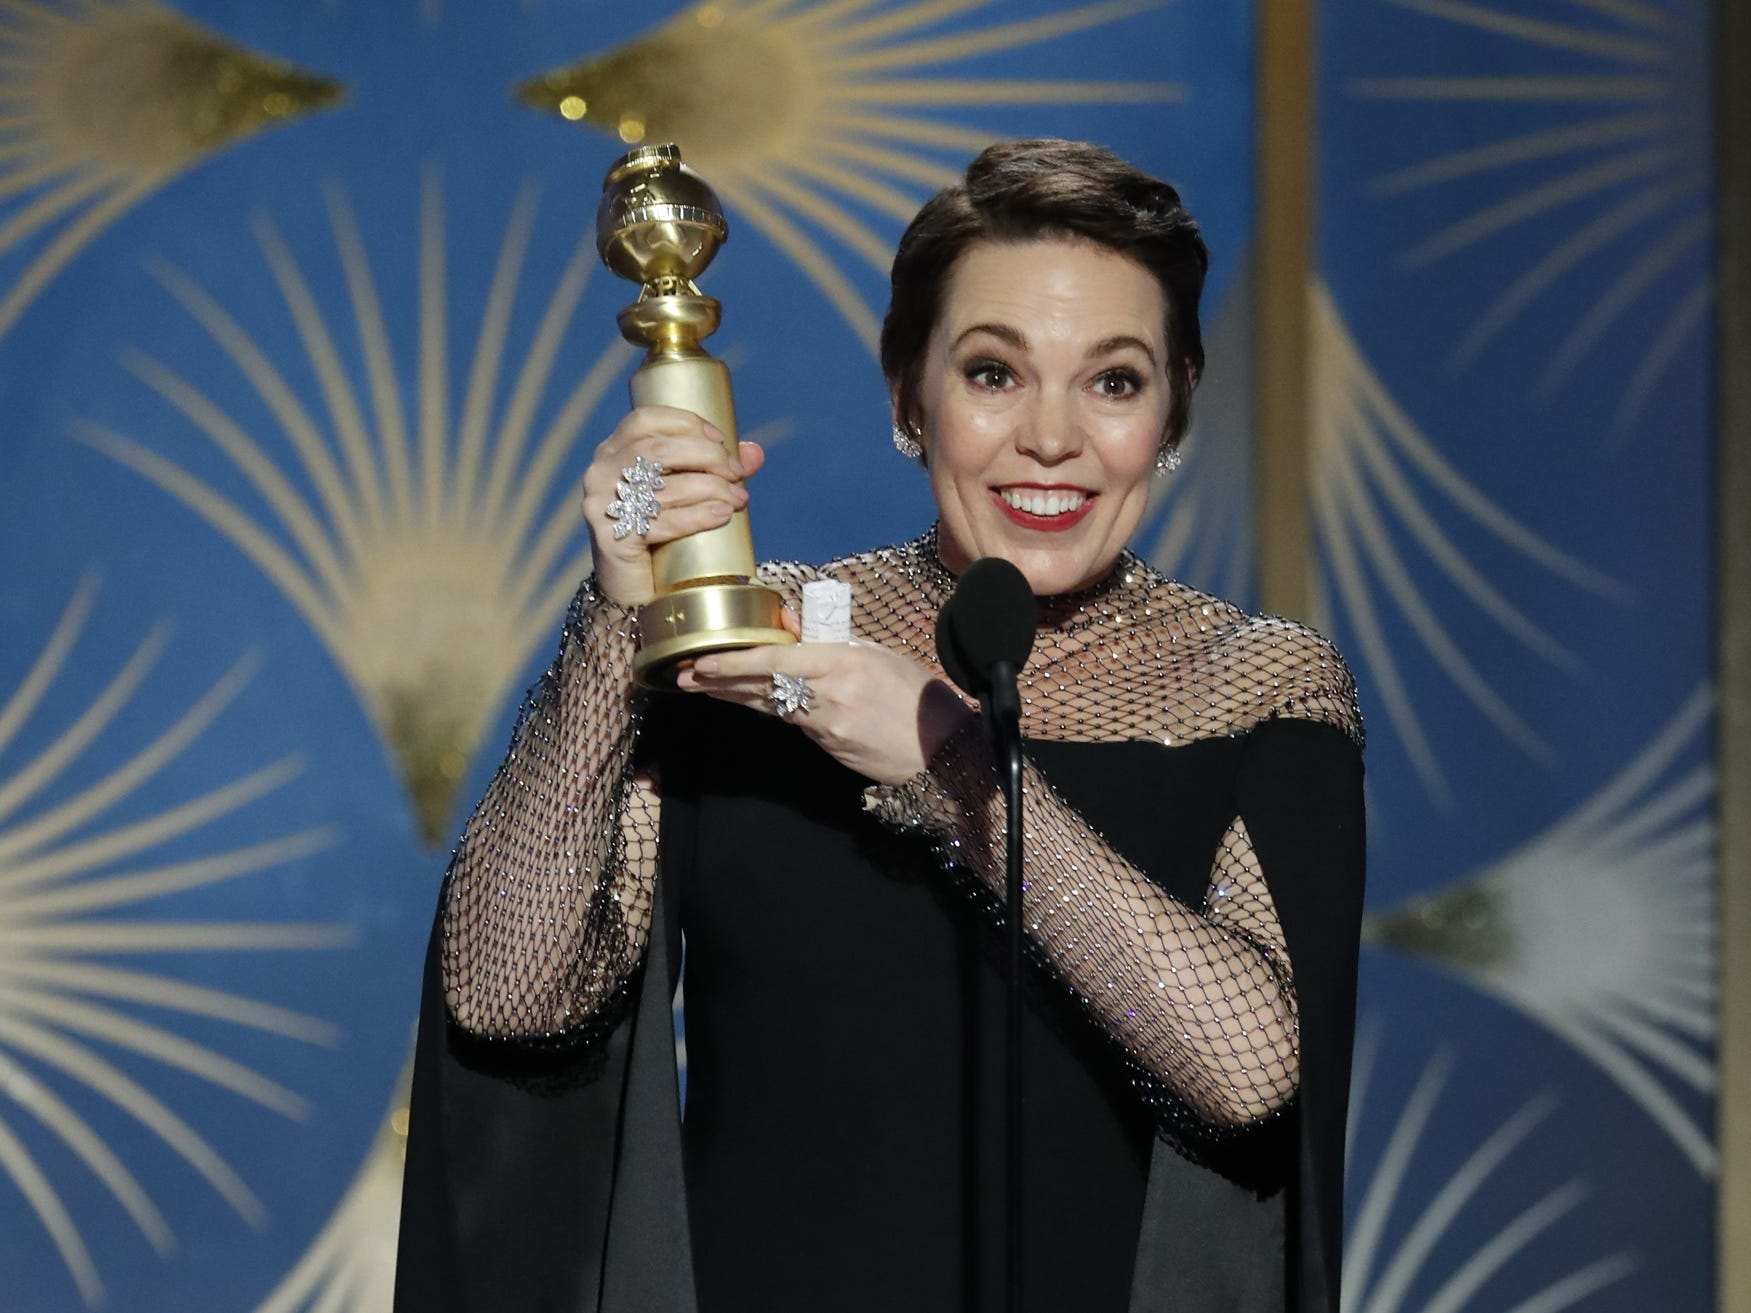 Olivia Colman accepts her award for Best Actress - Motion Picture, Musical or Comedy during the 76th Golden Globe Awards.